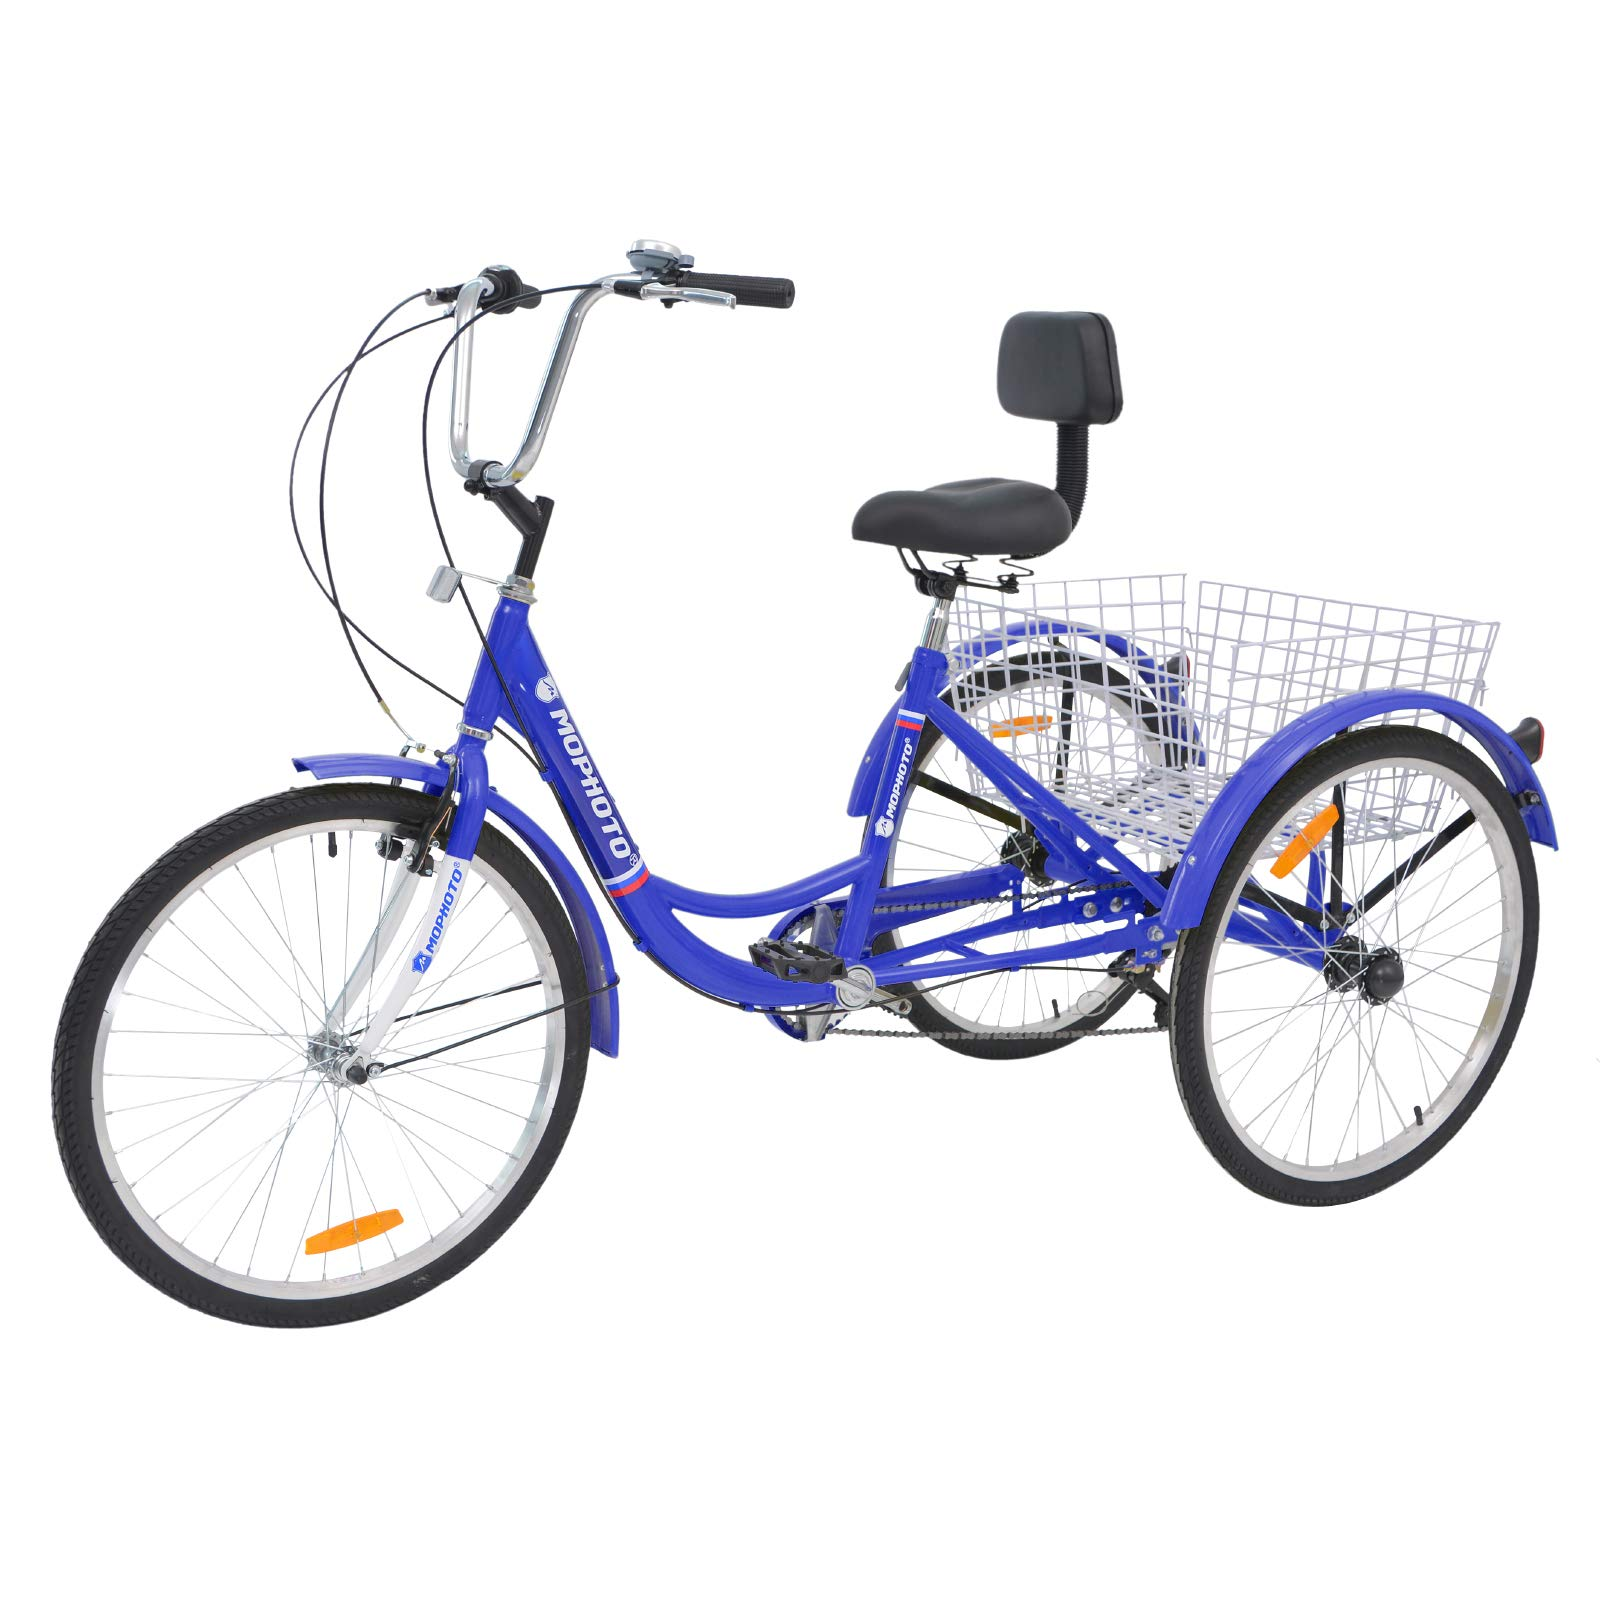 "MOPHOTO 24"" 7 Speed 3-Wheel Adult Tricycle Trike Cruiser Bike, Cargo Trike Cruiser Cycling Tricycle for Outdoor Sports"